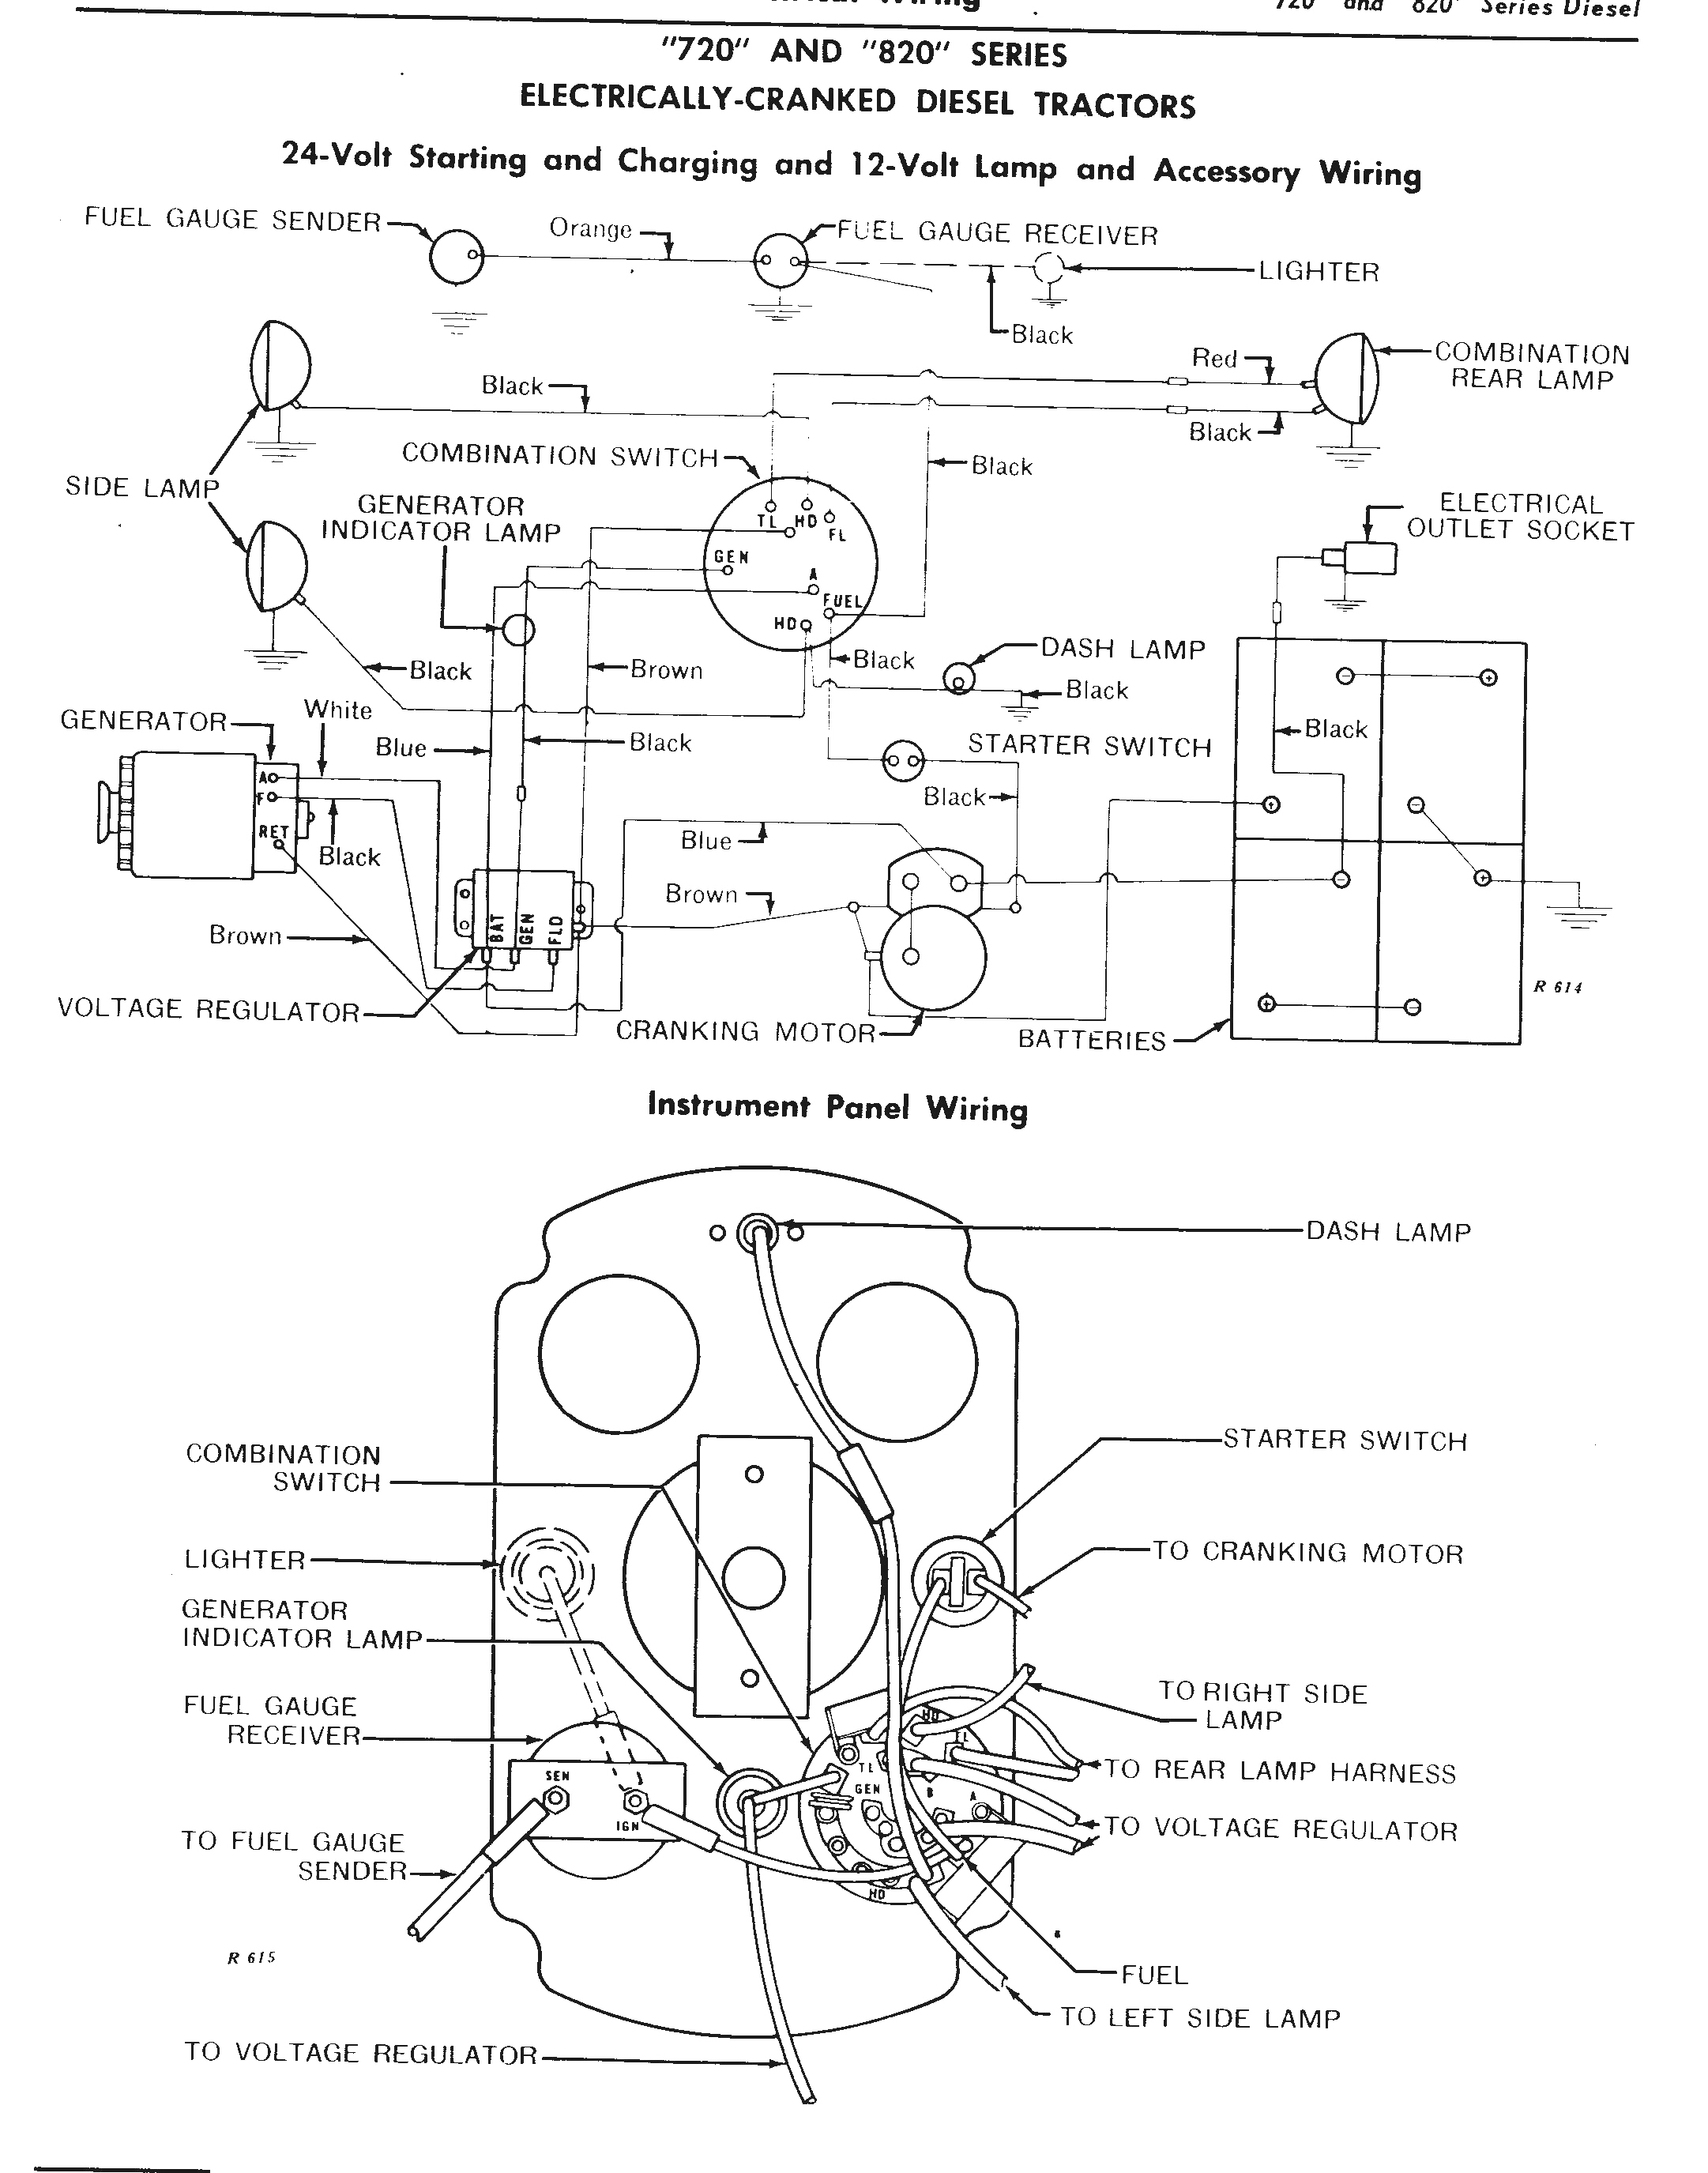 6 Volt Voltage Regulator Wiring Diagram The John Deere 24 Electrical System Explained